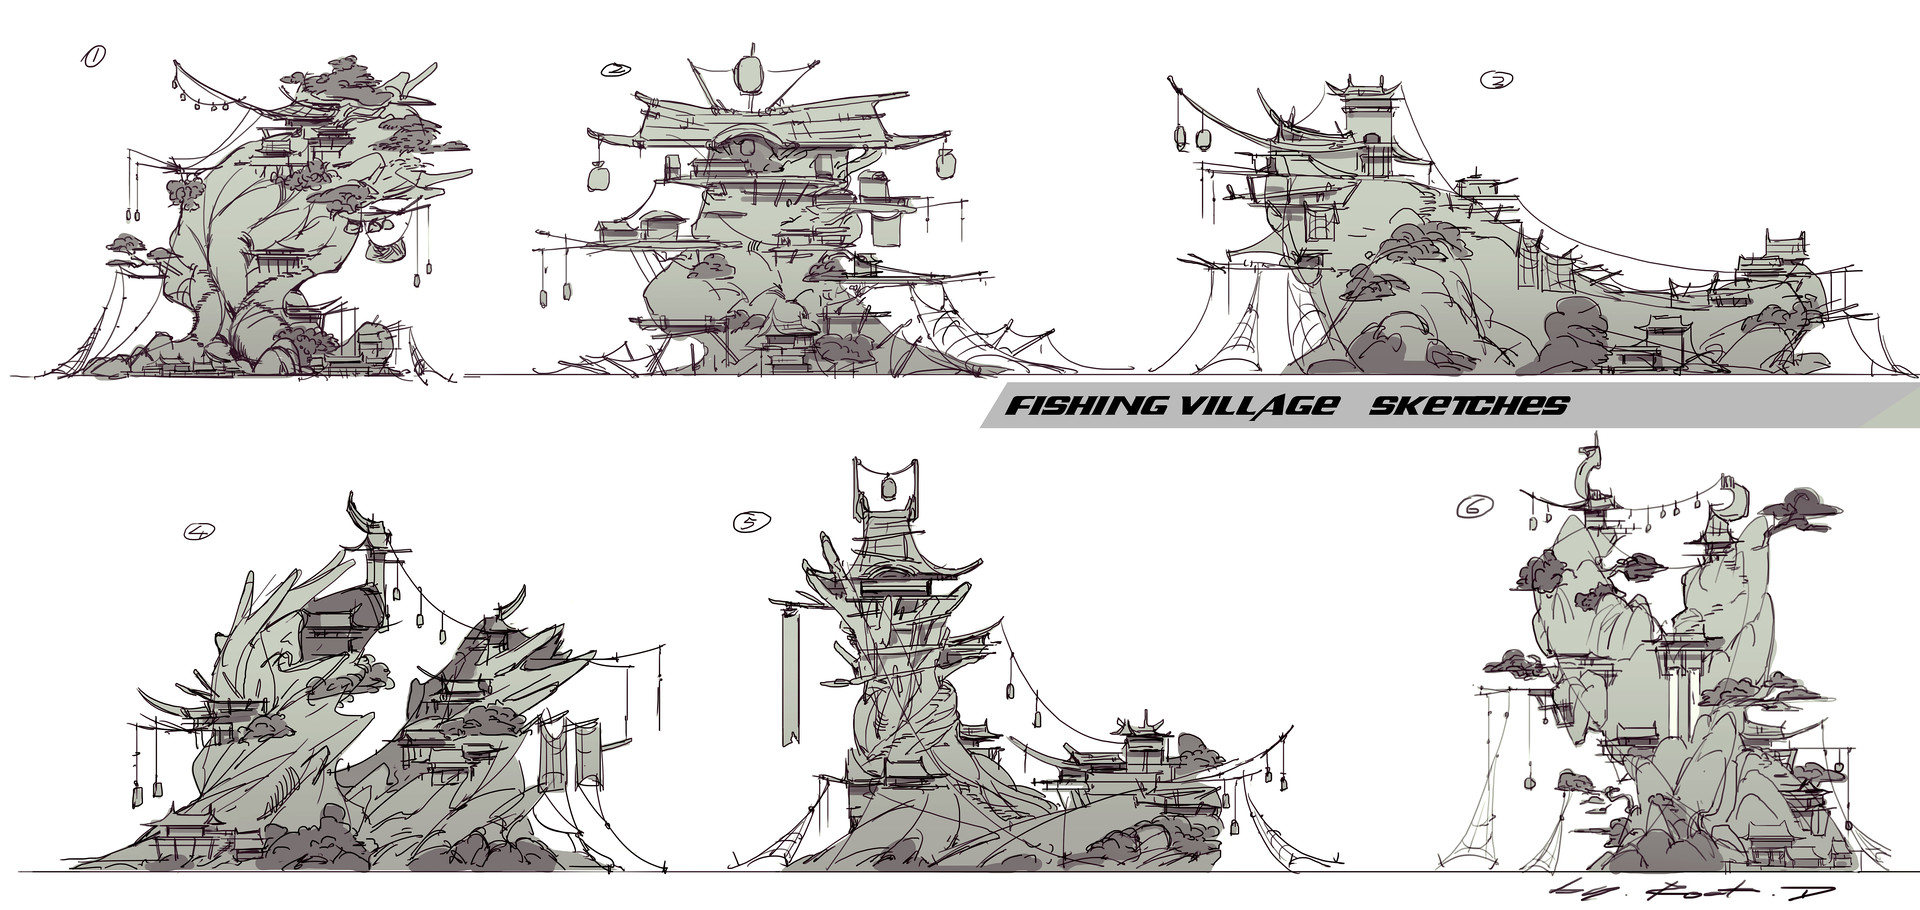 Rock d finshing village sketches